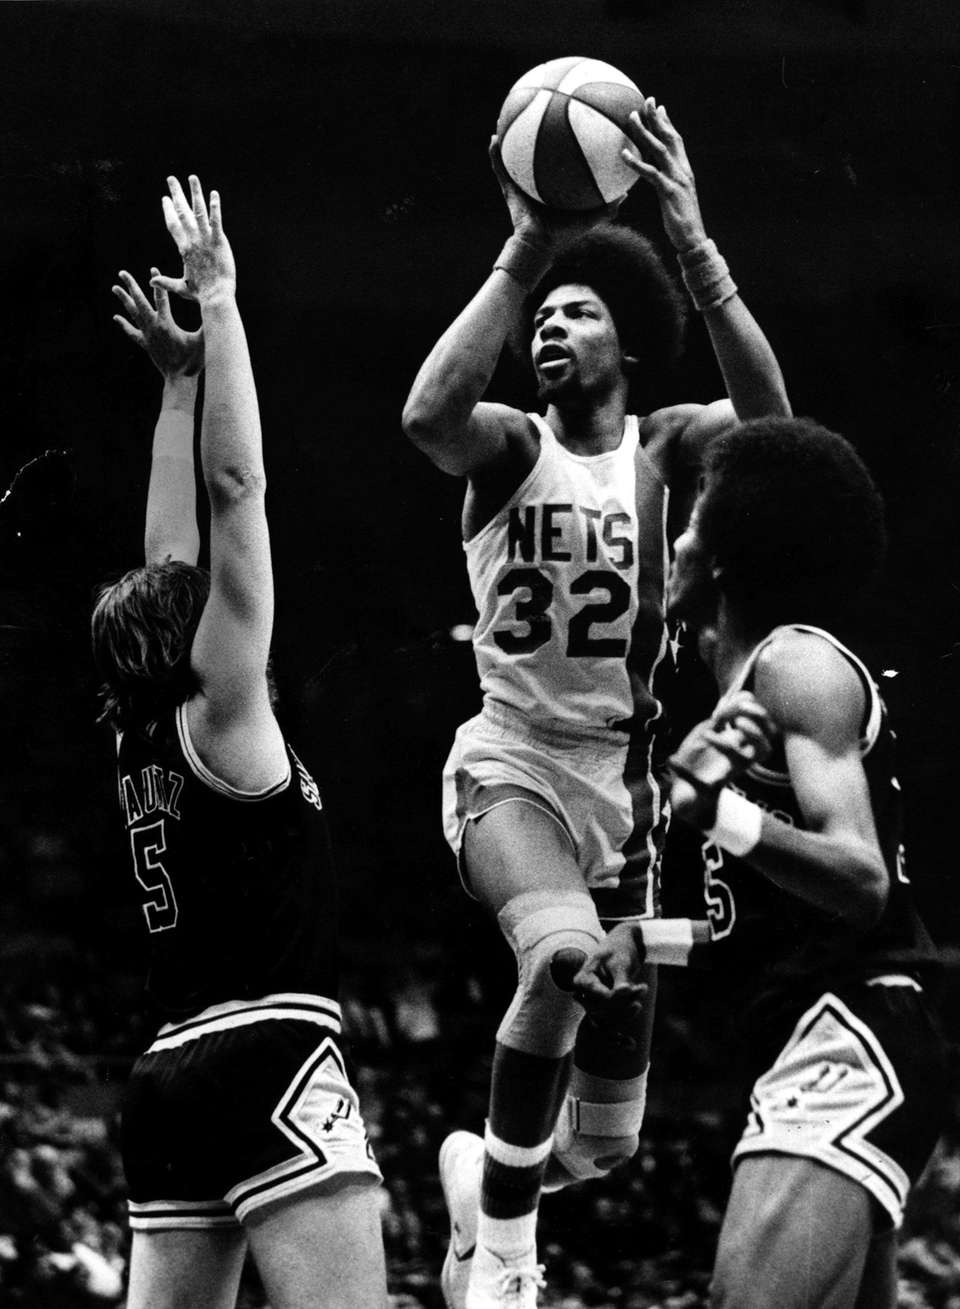 Basketball Hall of Famer Dr. J was born